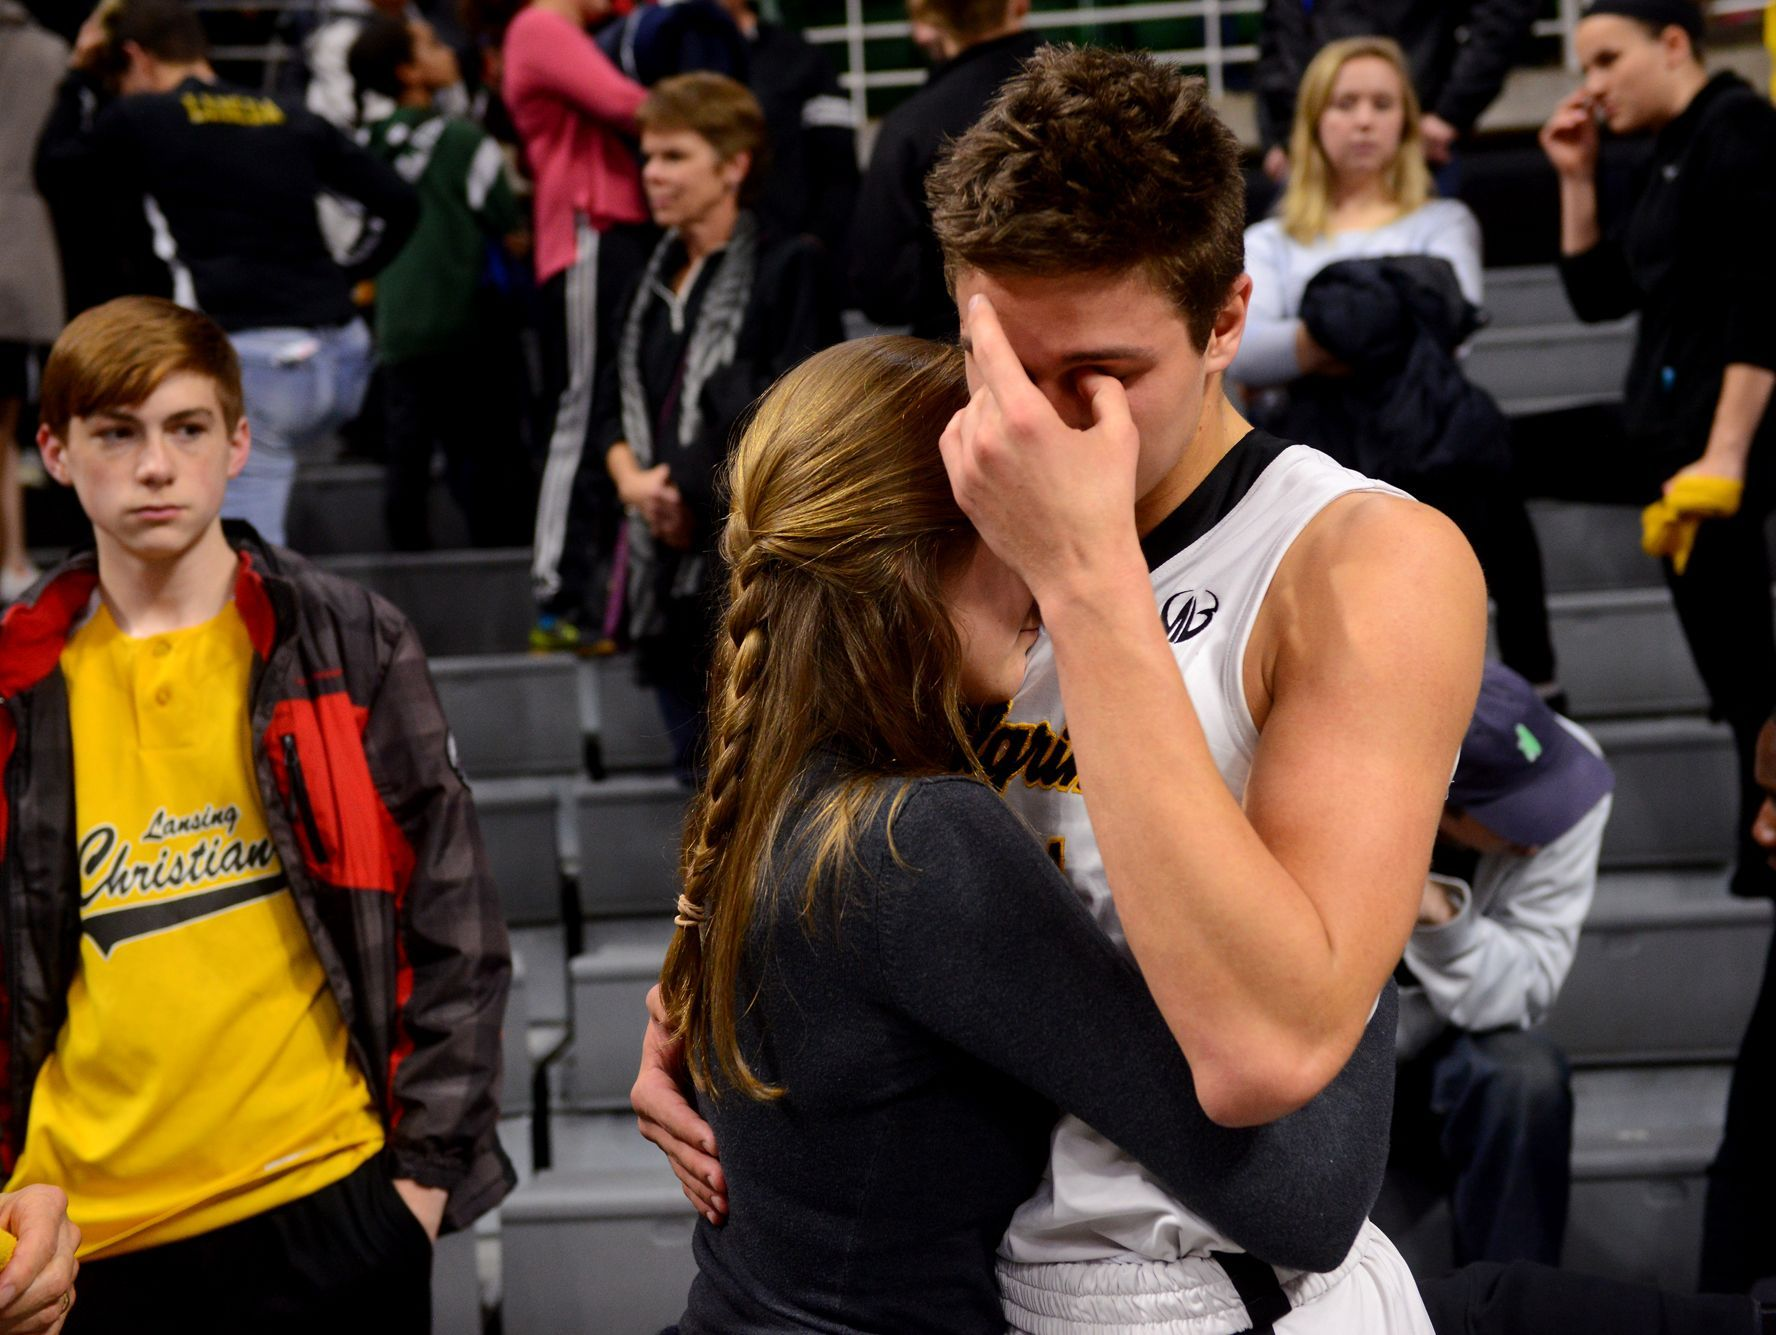 Briley Brogan comforts Lansing Christian's Preston Granger after the team's loss in the Class D state semifinals against Buckley on Thursday, March 23, 2017 at the Breslin Center in East Lansing. Buckley won, 68-61.